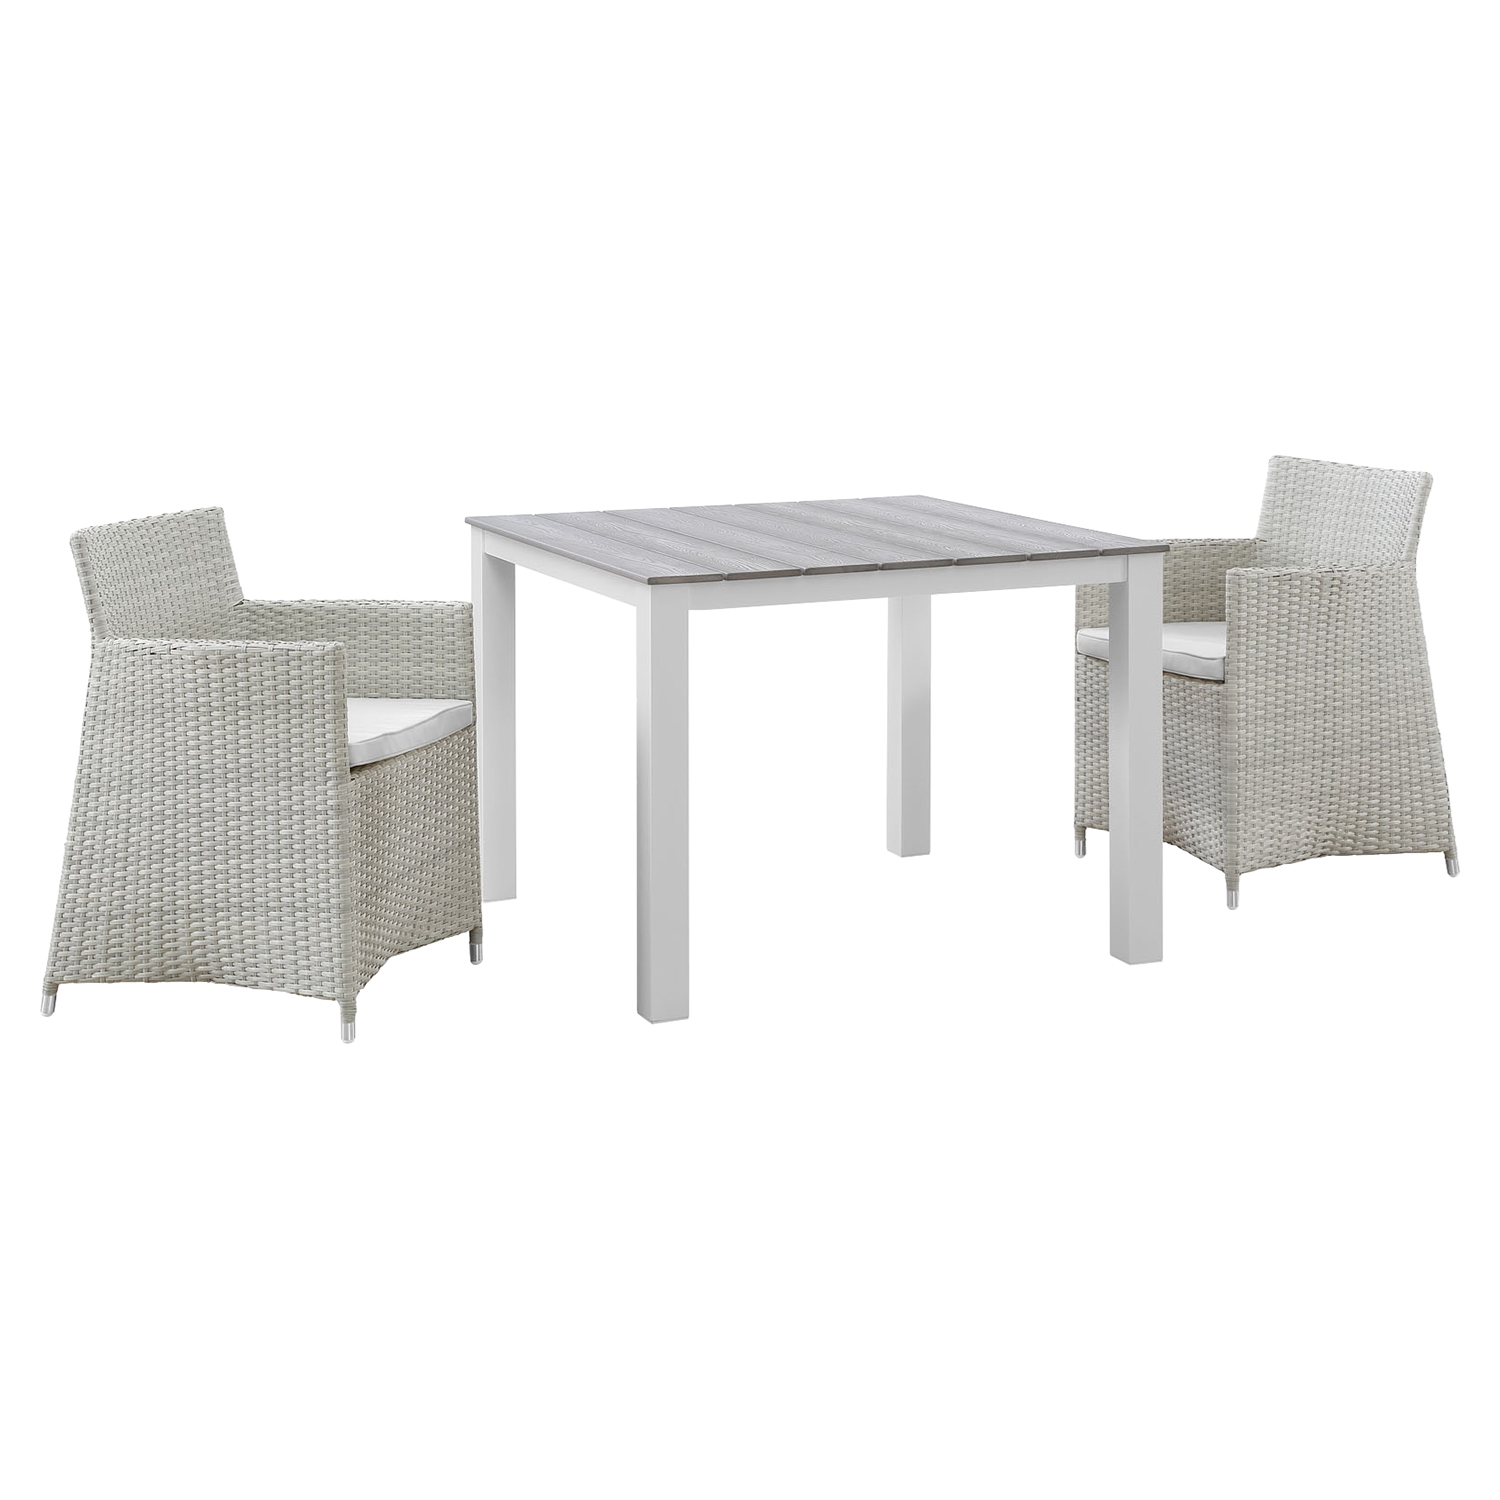 Junction 3 Pieces Outdoor Patio Set - Wicker, Gray Frame, White Cushion - EEI-1742-GRY-WHI-SET